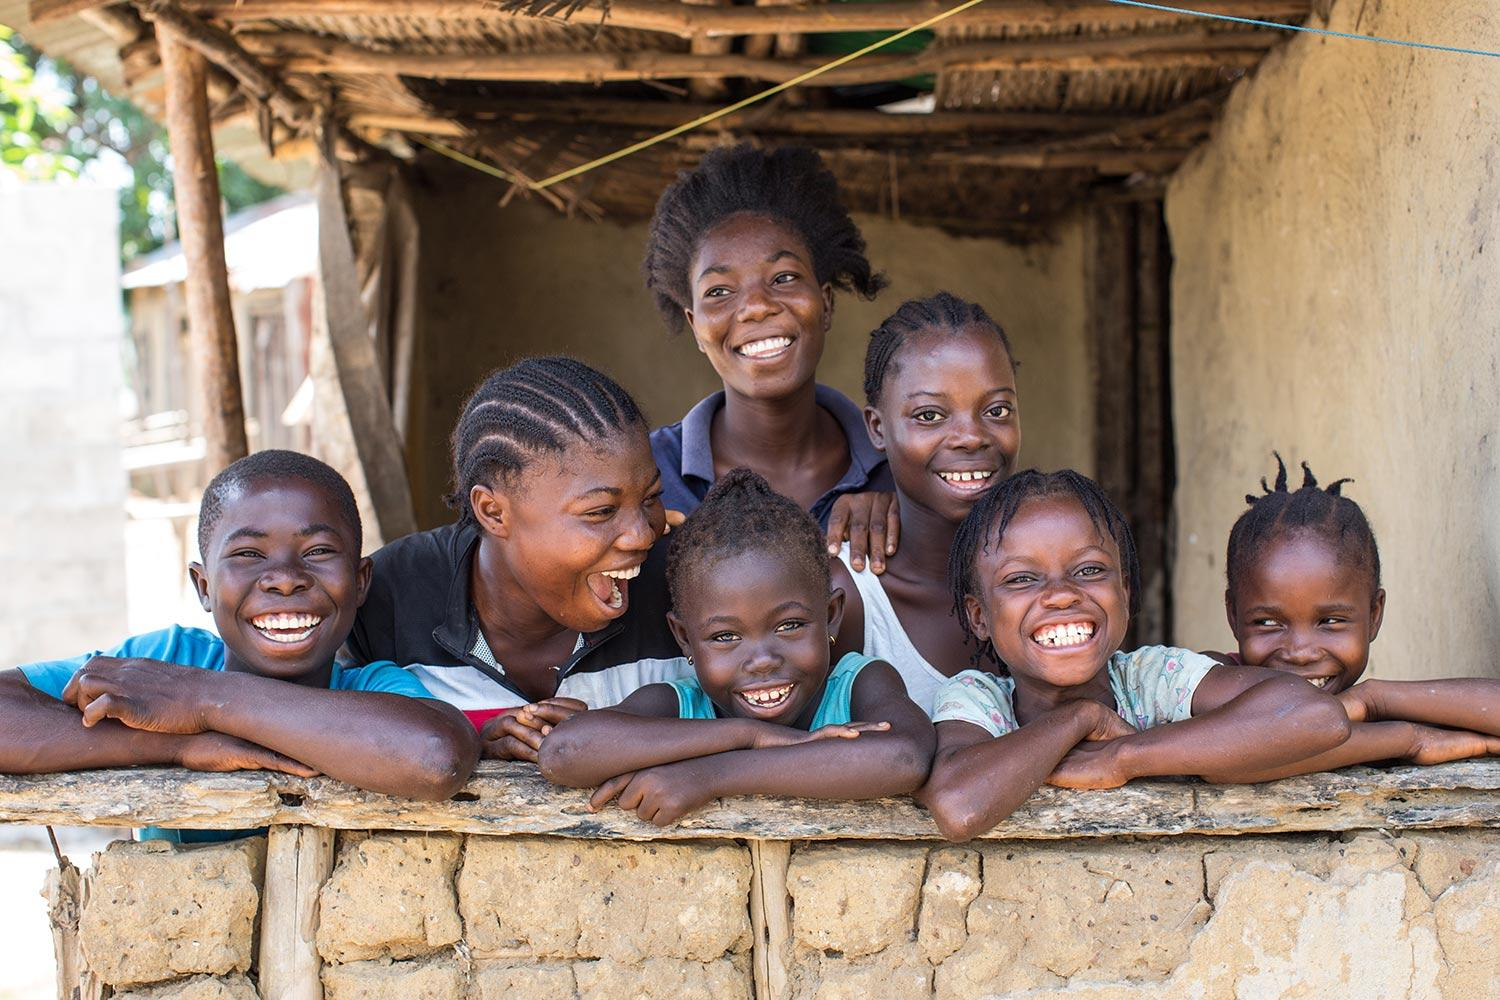 Group of Kids Smiling in Liberia